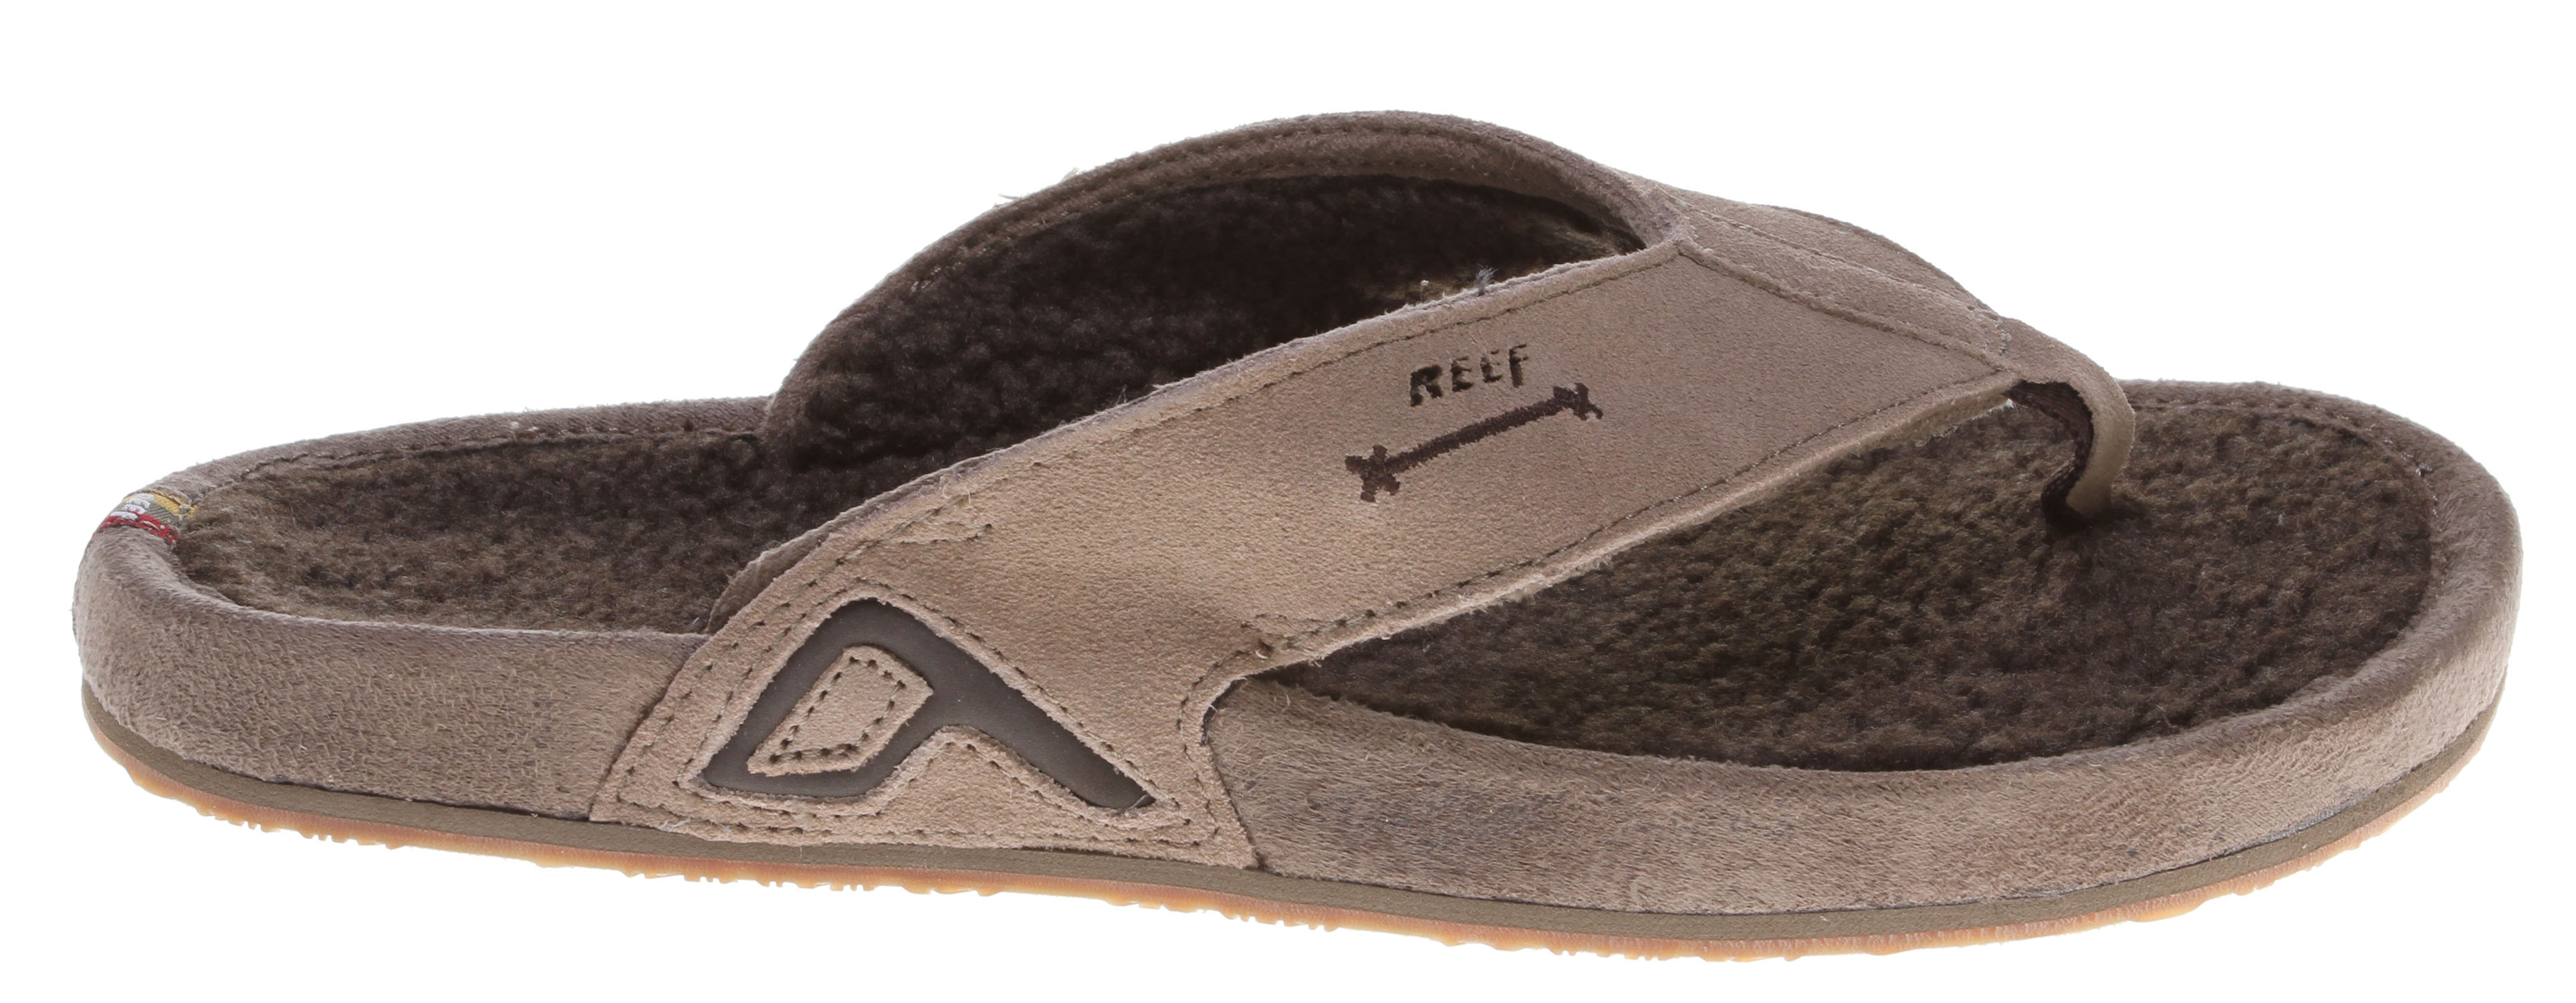 Surf Key Features of the Reef Chewmaca Sandals: Cozy suede leather with shearling lined upper Compression molded EVA construction Wrapped midsole with shearling footbed Molded reef rubber outsole - $38.95